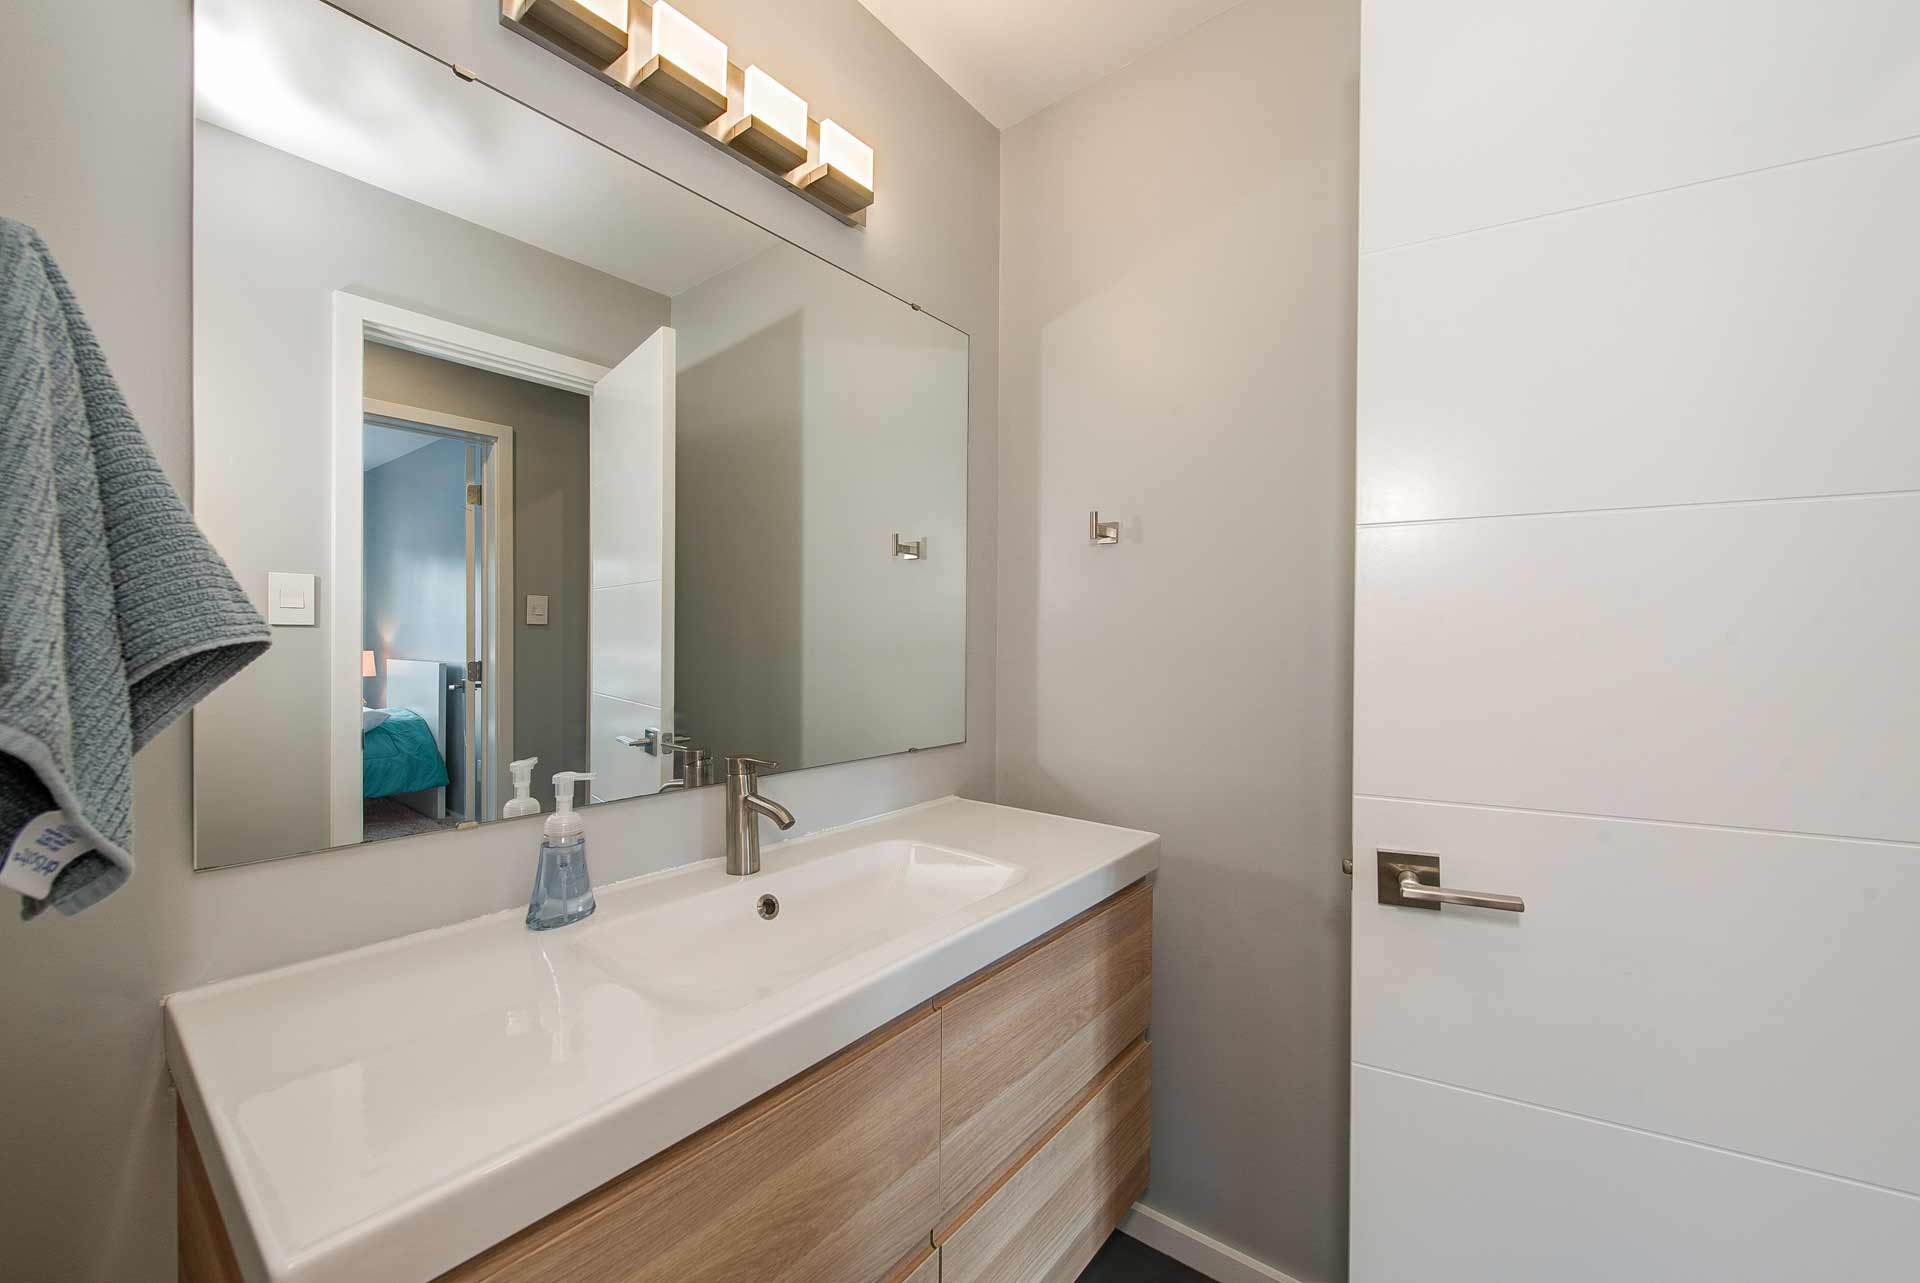 New IKEA wall hung vanity and new door/hardware adorn kid wing bathroom - Reef Court Light Renovation - Geist Reservoir - Indianapolis, IN - Photo by Structured Photography